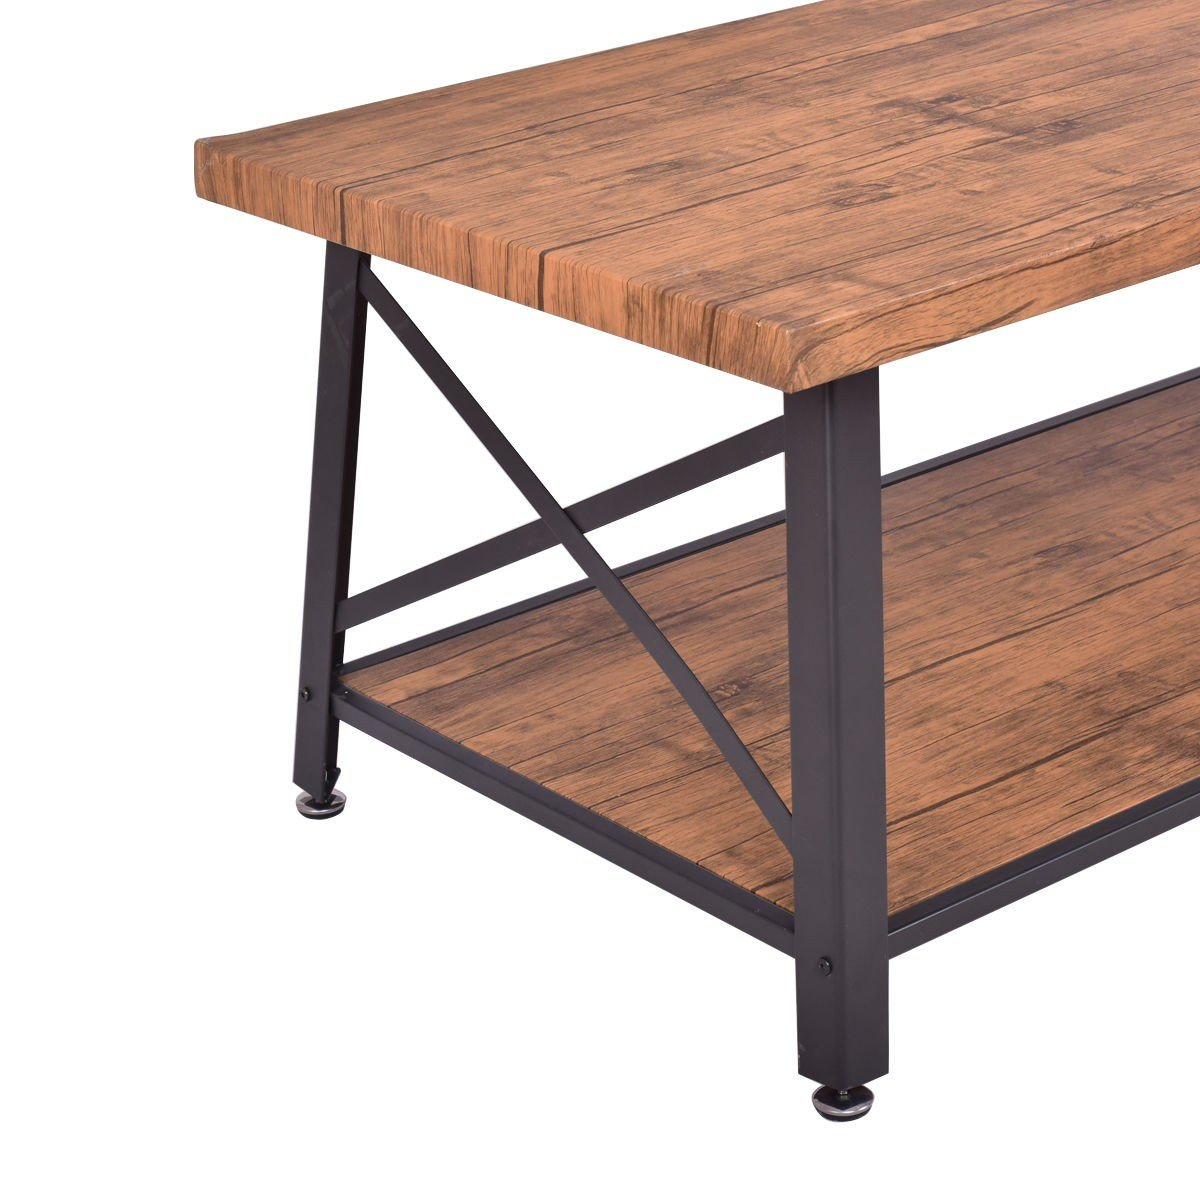 rectangular metal frame wood coffee table with storage shelf by choice products. Black Bedroom Furniture Sets. Home Design Ideas